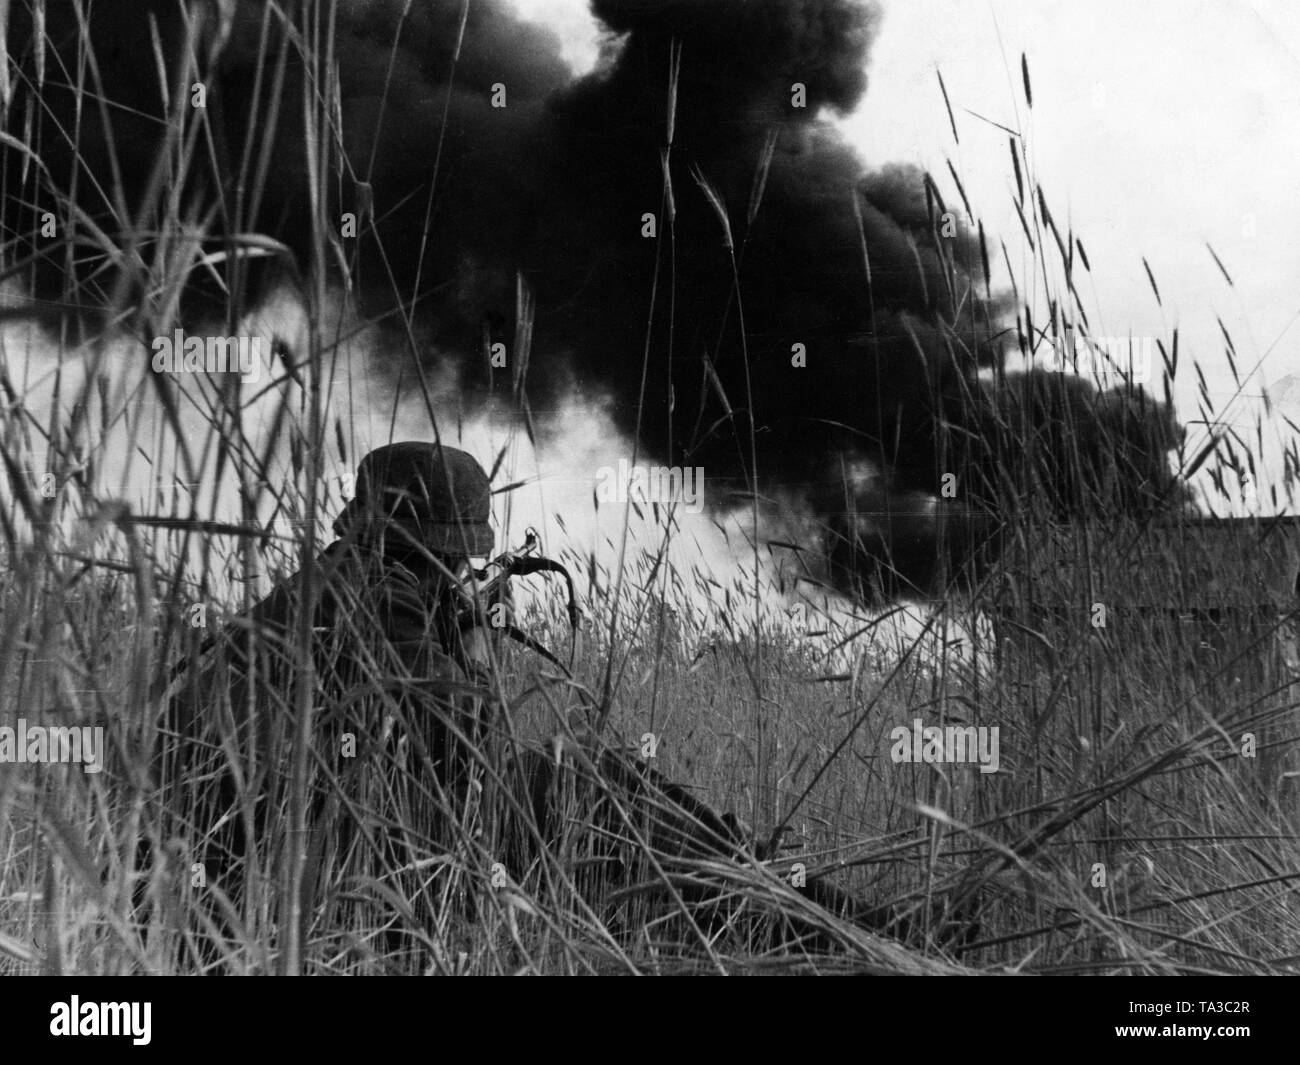 A German soldier with his Mp-40 lying on a corn field. Stock Photo